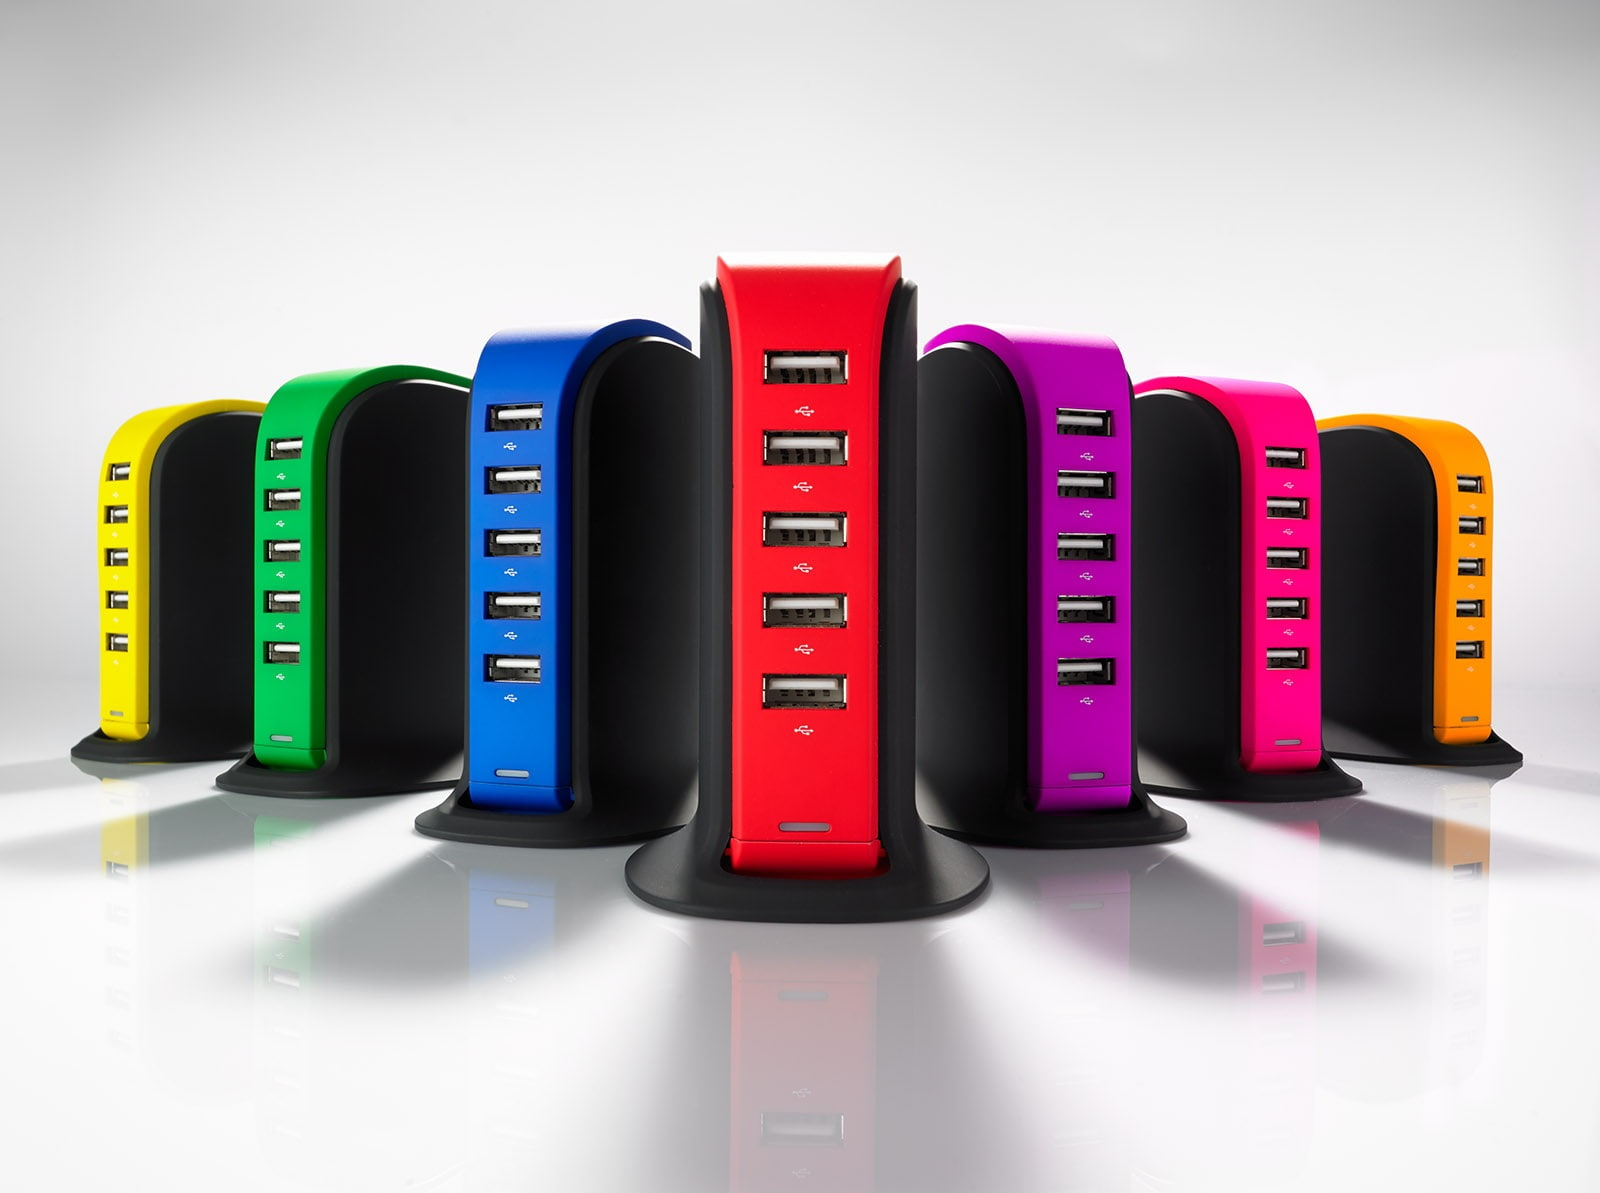 Desk Charger Power Tower PT50 - The charging station with 5 USB ports